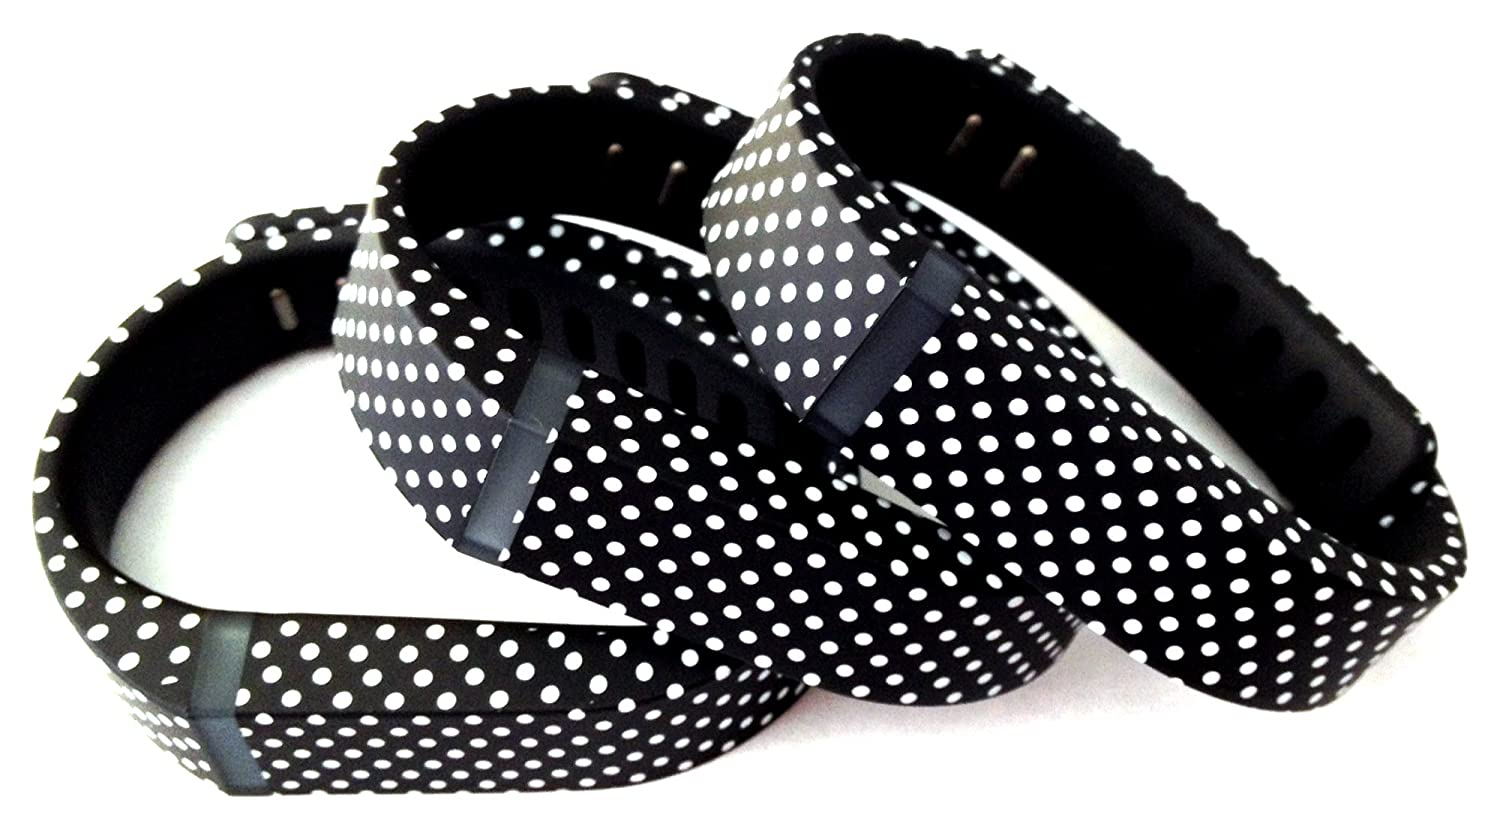 3pcs Large L Black with White Dots Spots Replacement Bands With Clasp for Fitbit FLEX Only /No tracker/ Wireless Activity Bracelet Sport Wristband Fit Bit Flex Bracelet Sport Arm Band Armband